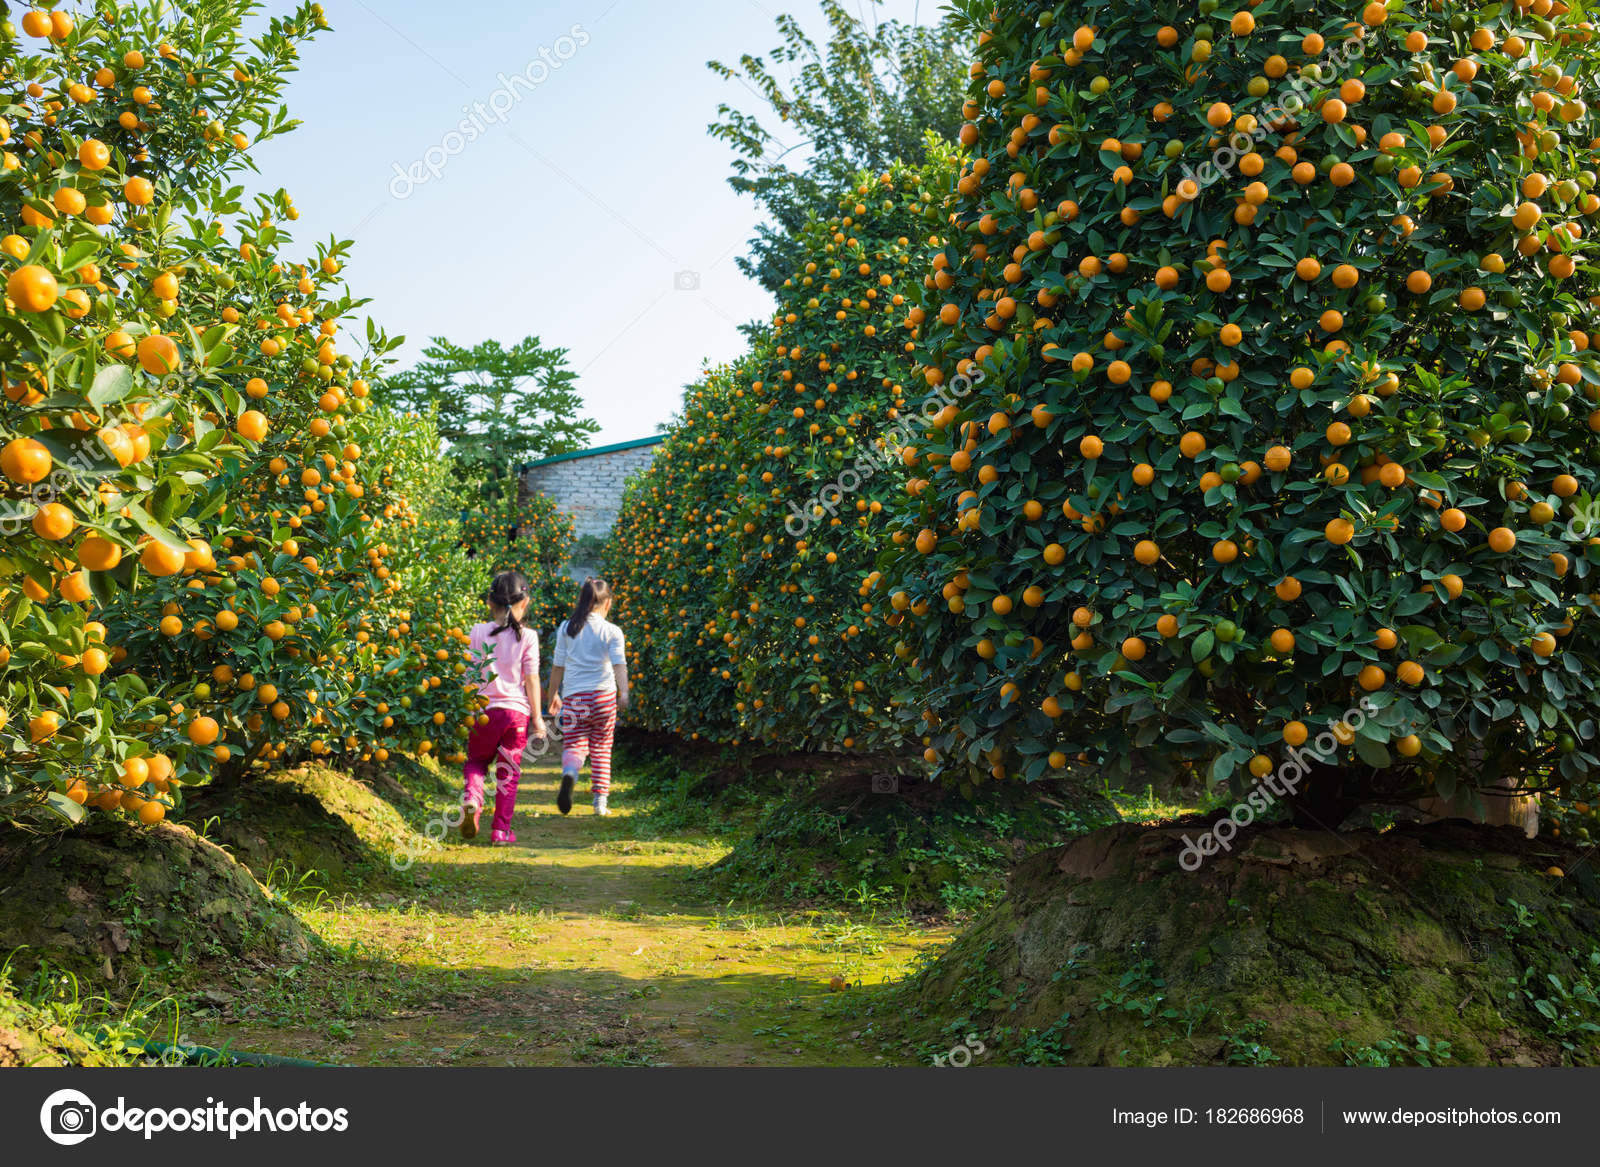 kumquat garden symbol vietnamese lunar new year nearly every household stock photo - Vietnamese Garden